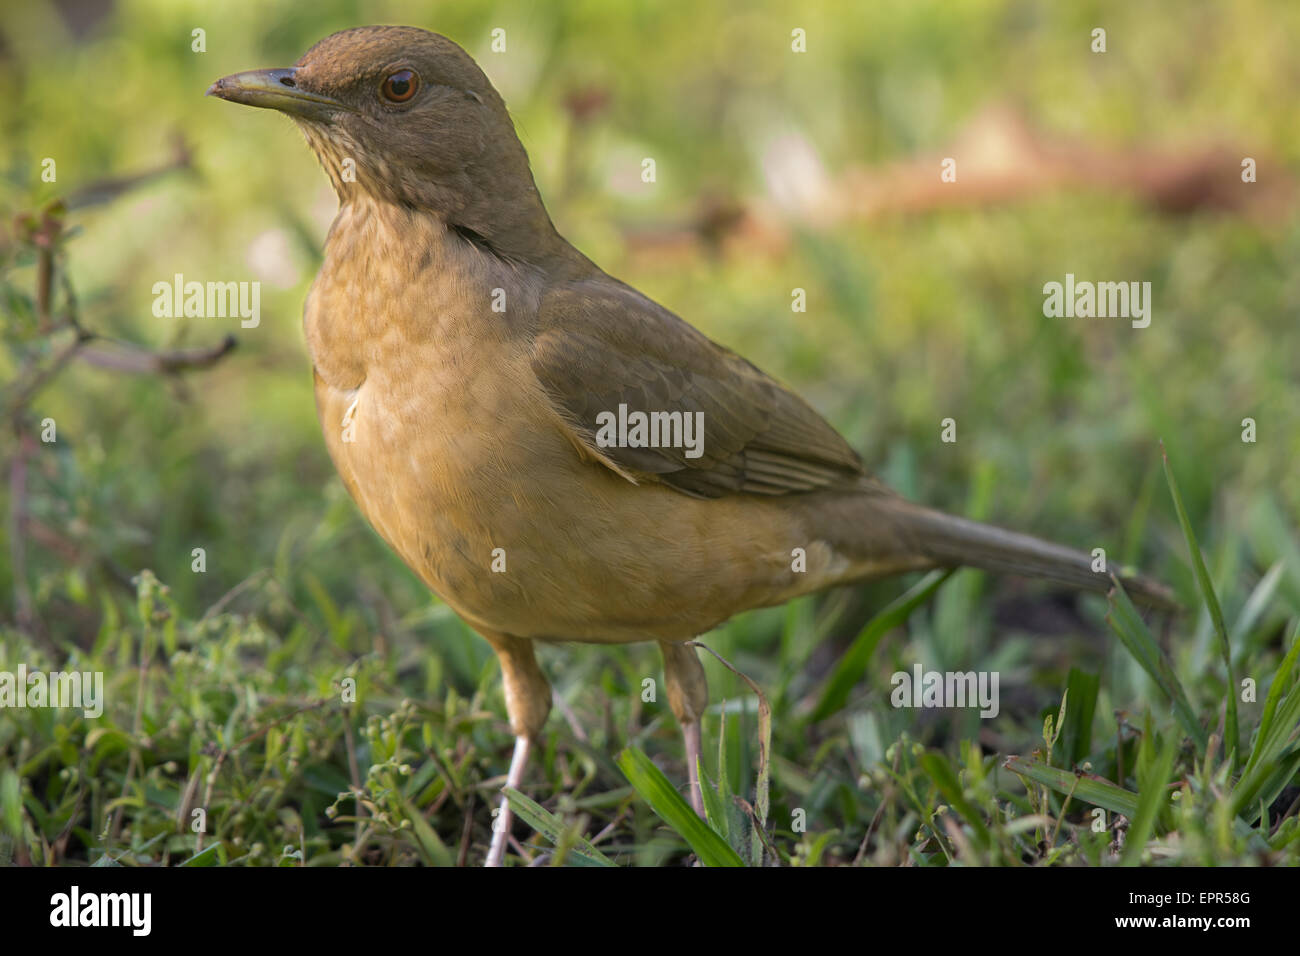 Clay-coloured Robin (Turdus grayi) standing on a lawn - Stock Image